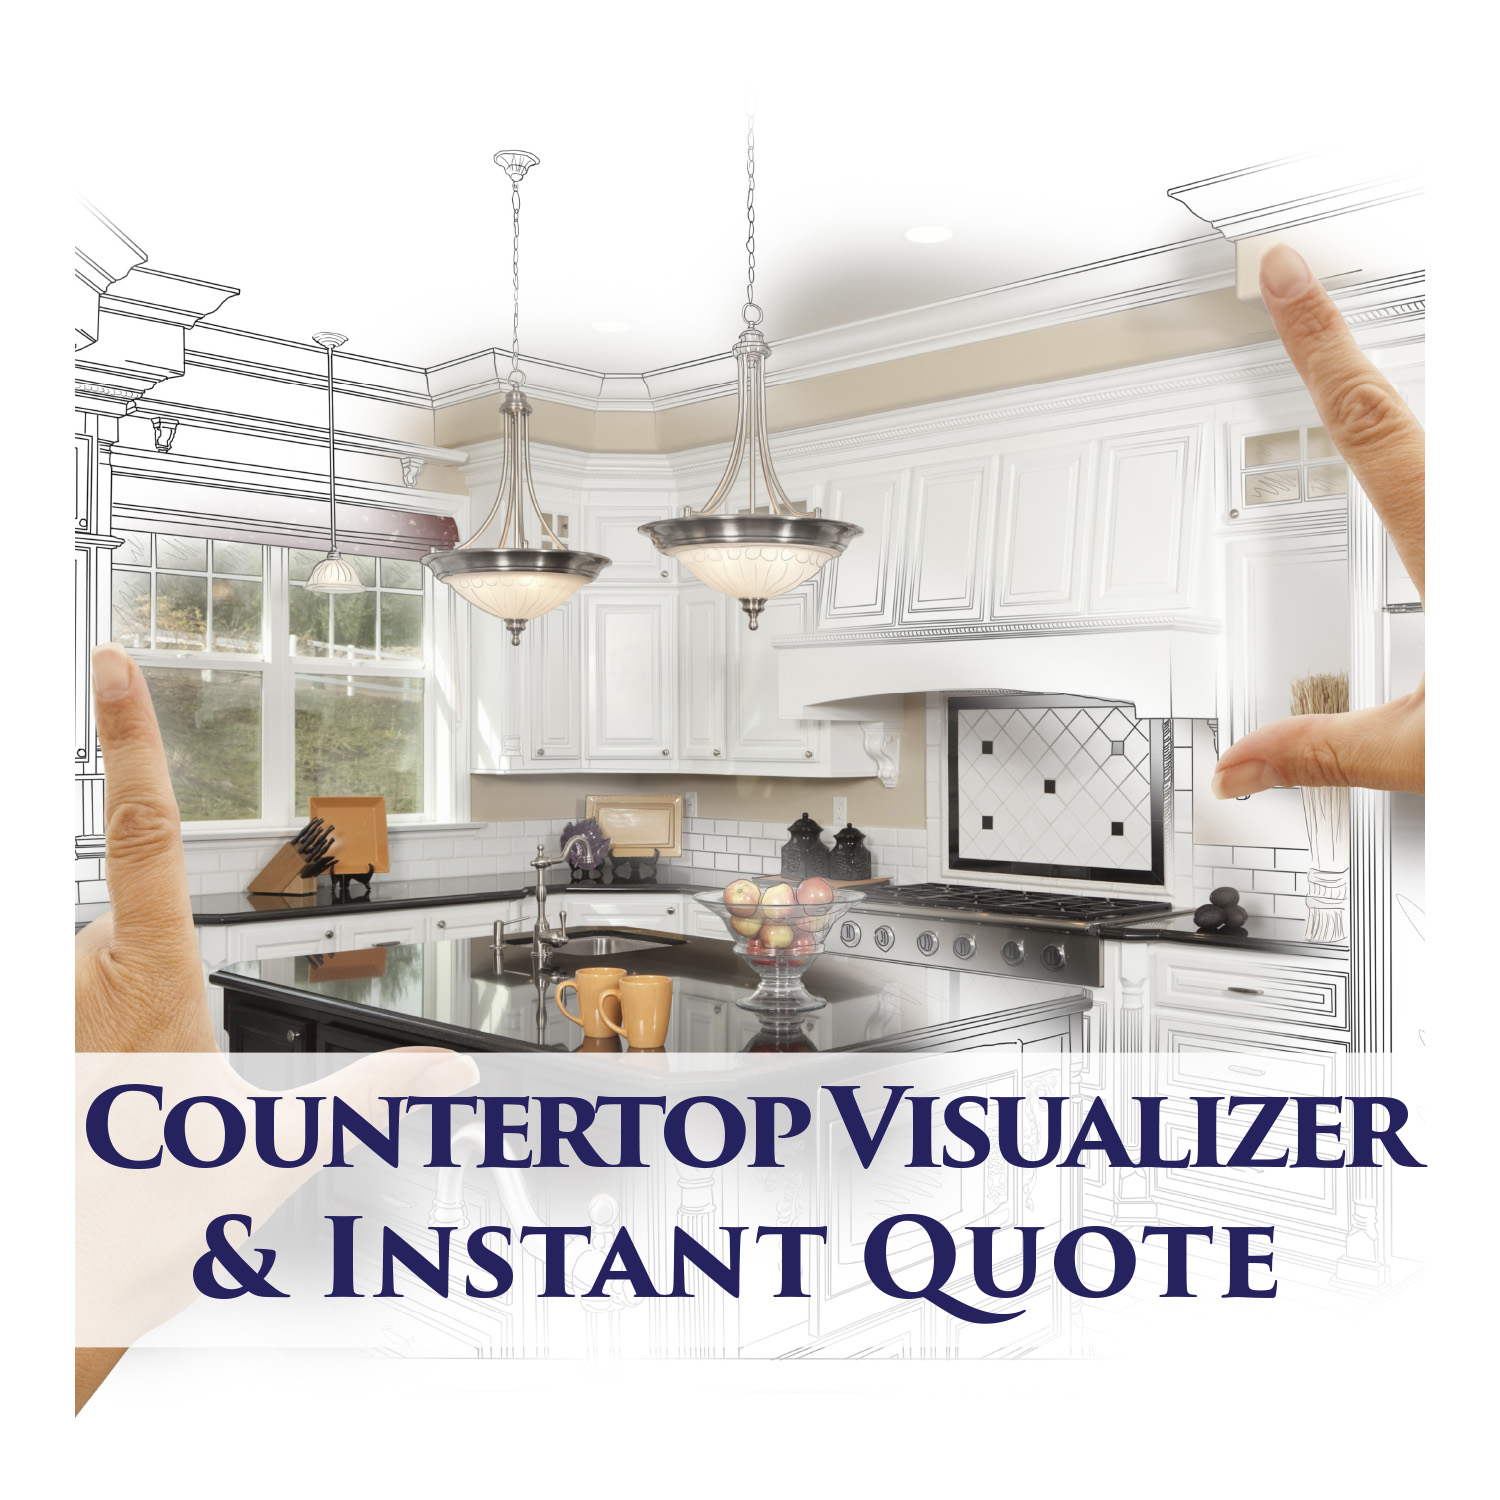 Countertop Visualizer and Instant Quote